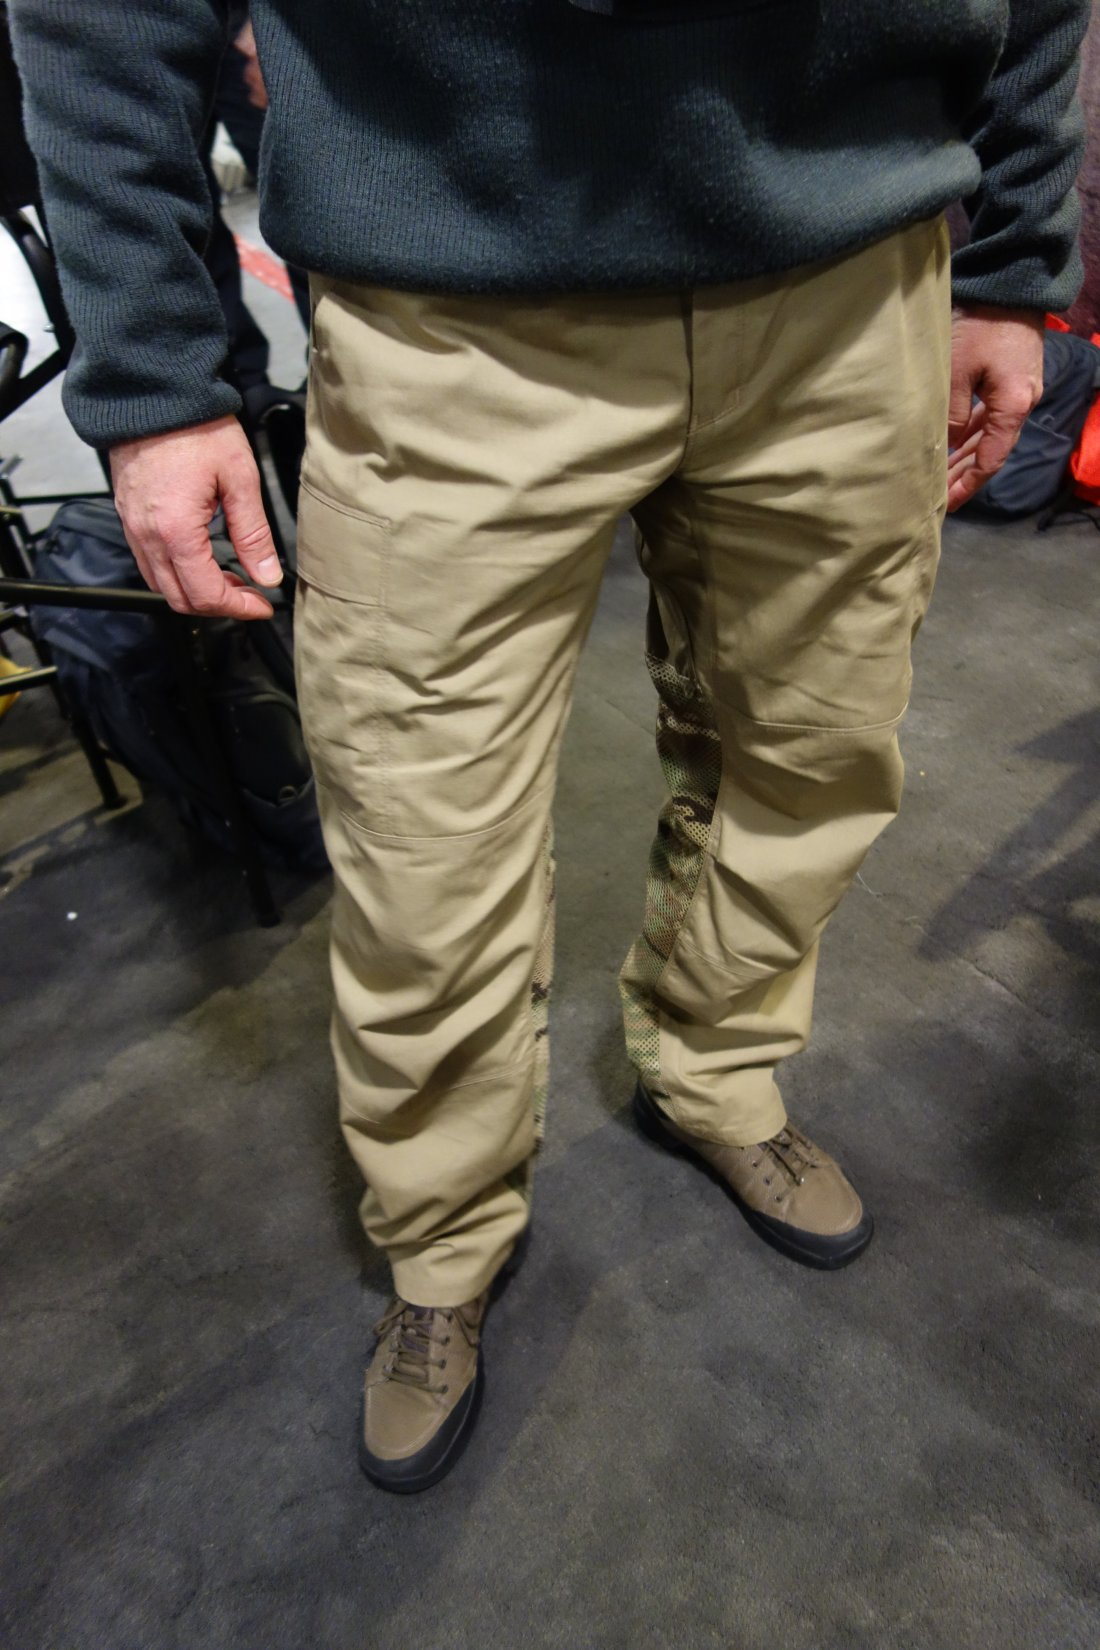 Vertx Airflow Phantom Ops Pant by Fighter Design Combat Tactical Pants with Passive Cooling Technology Evaporative Cooling Adam Slank SHOT Show 2014 David Crane DefenseReview.com DR 5 Vertx Airflow Phantom Ops Pant by Fighter Design: Combat/Tactical Pants with Passive Cooling Mesh Technology (Video!)